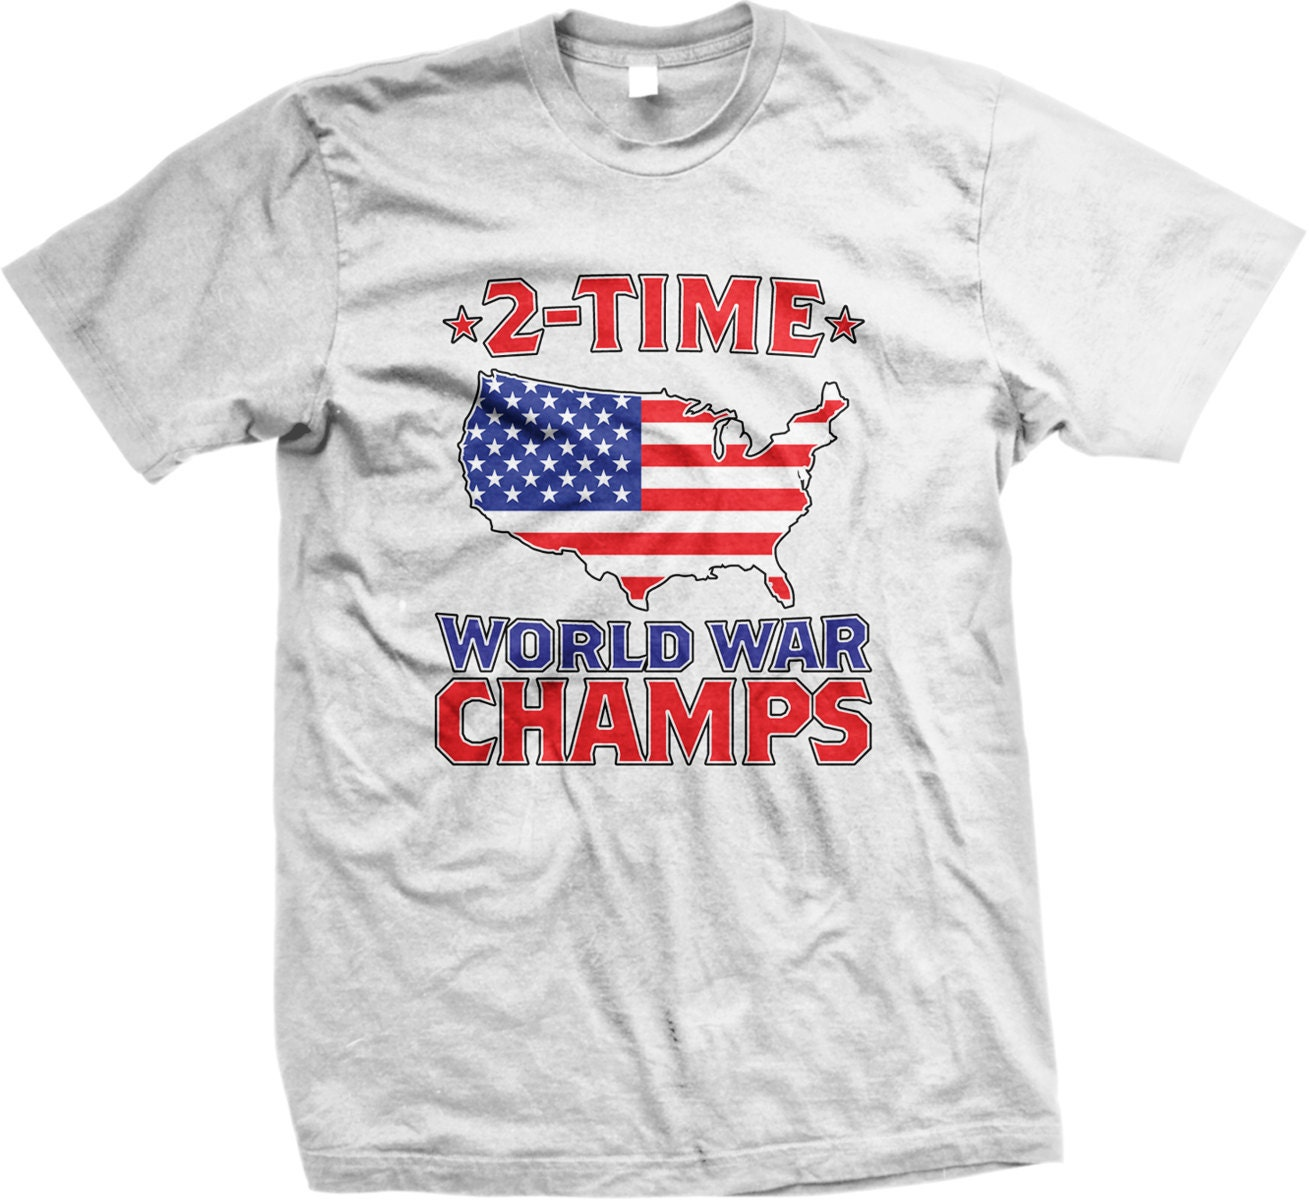 8e3348a3 2 Time World War Champs Men's T-shirt Independence Day | Etsy